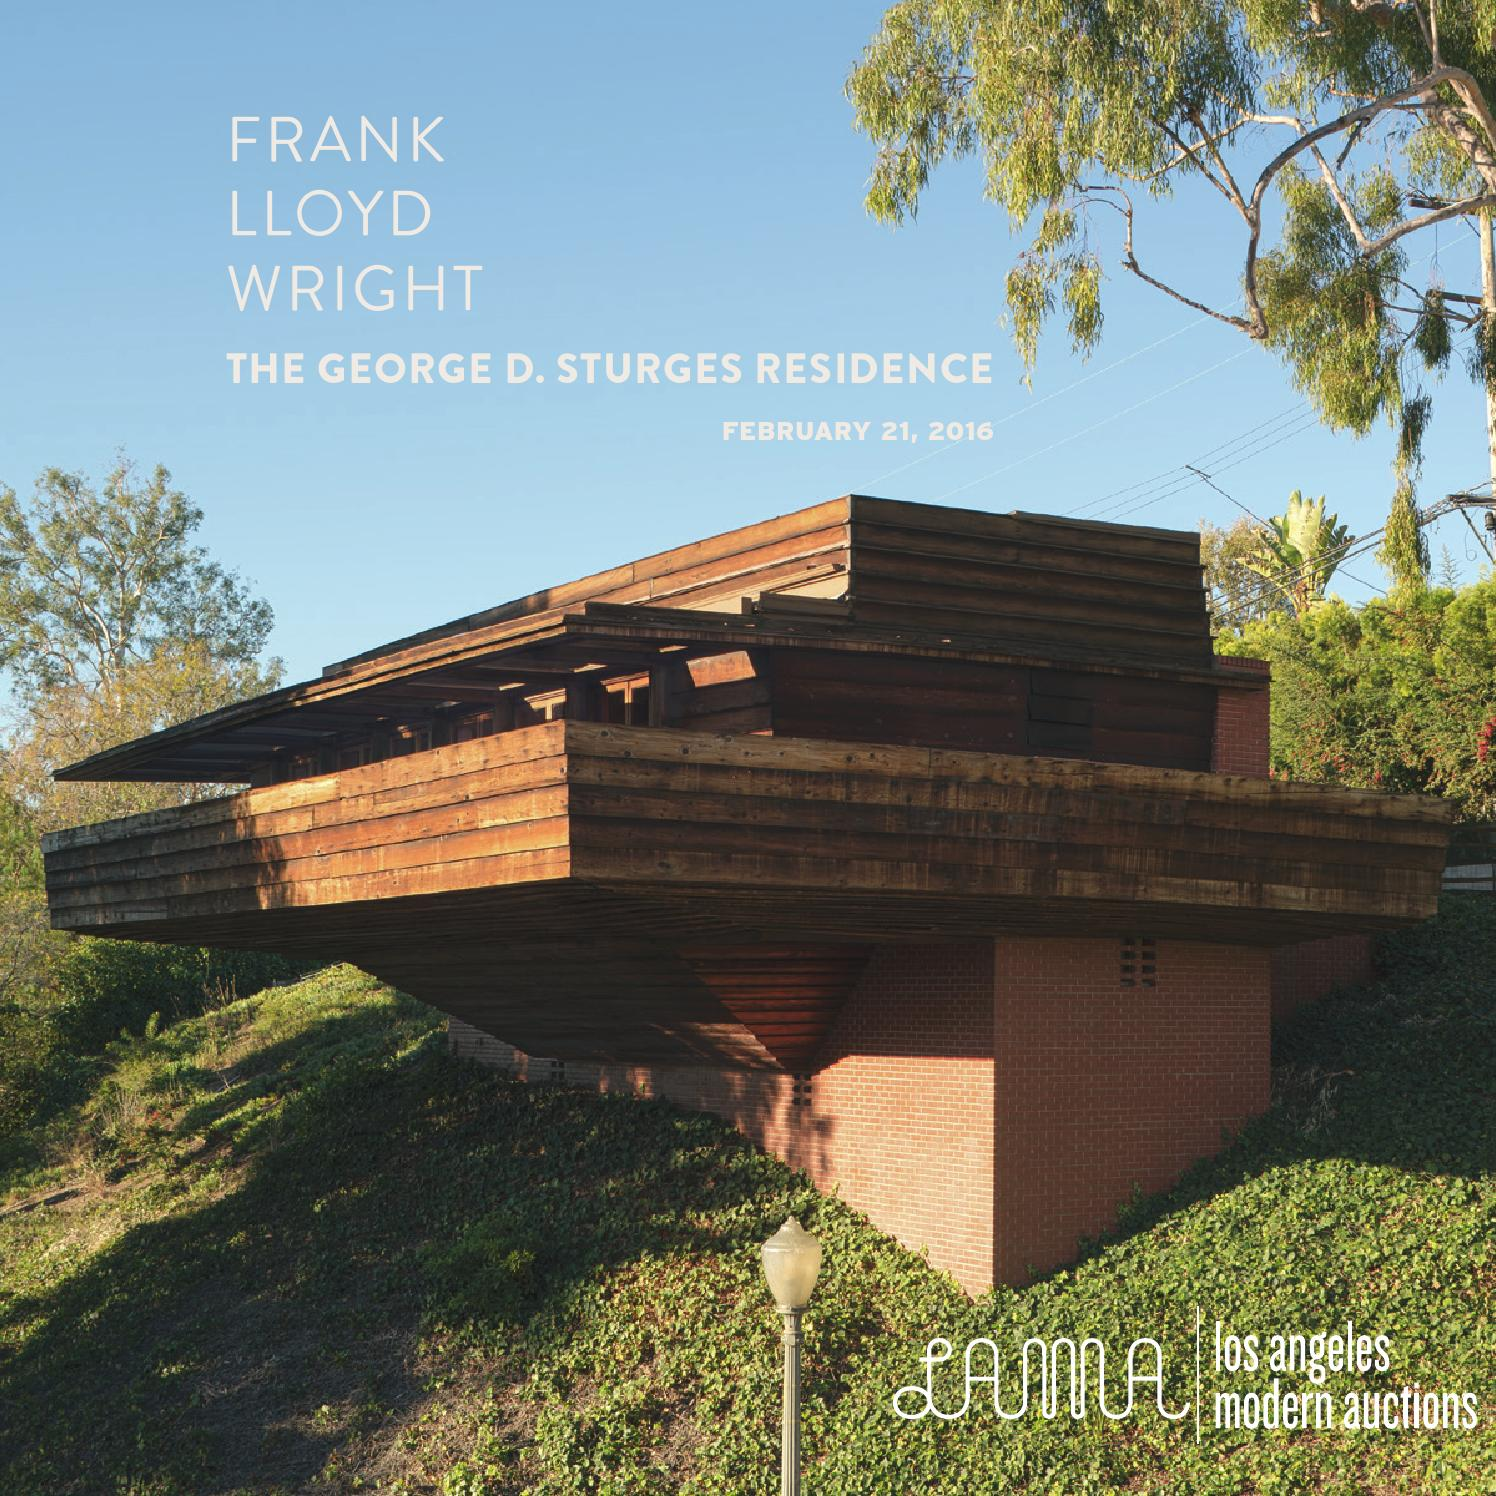 the frank lloyd wright george d sturges residence by los angeles modern auctions issuu. Black Bedroom Furniture Sets. Home Design Ideas